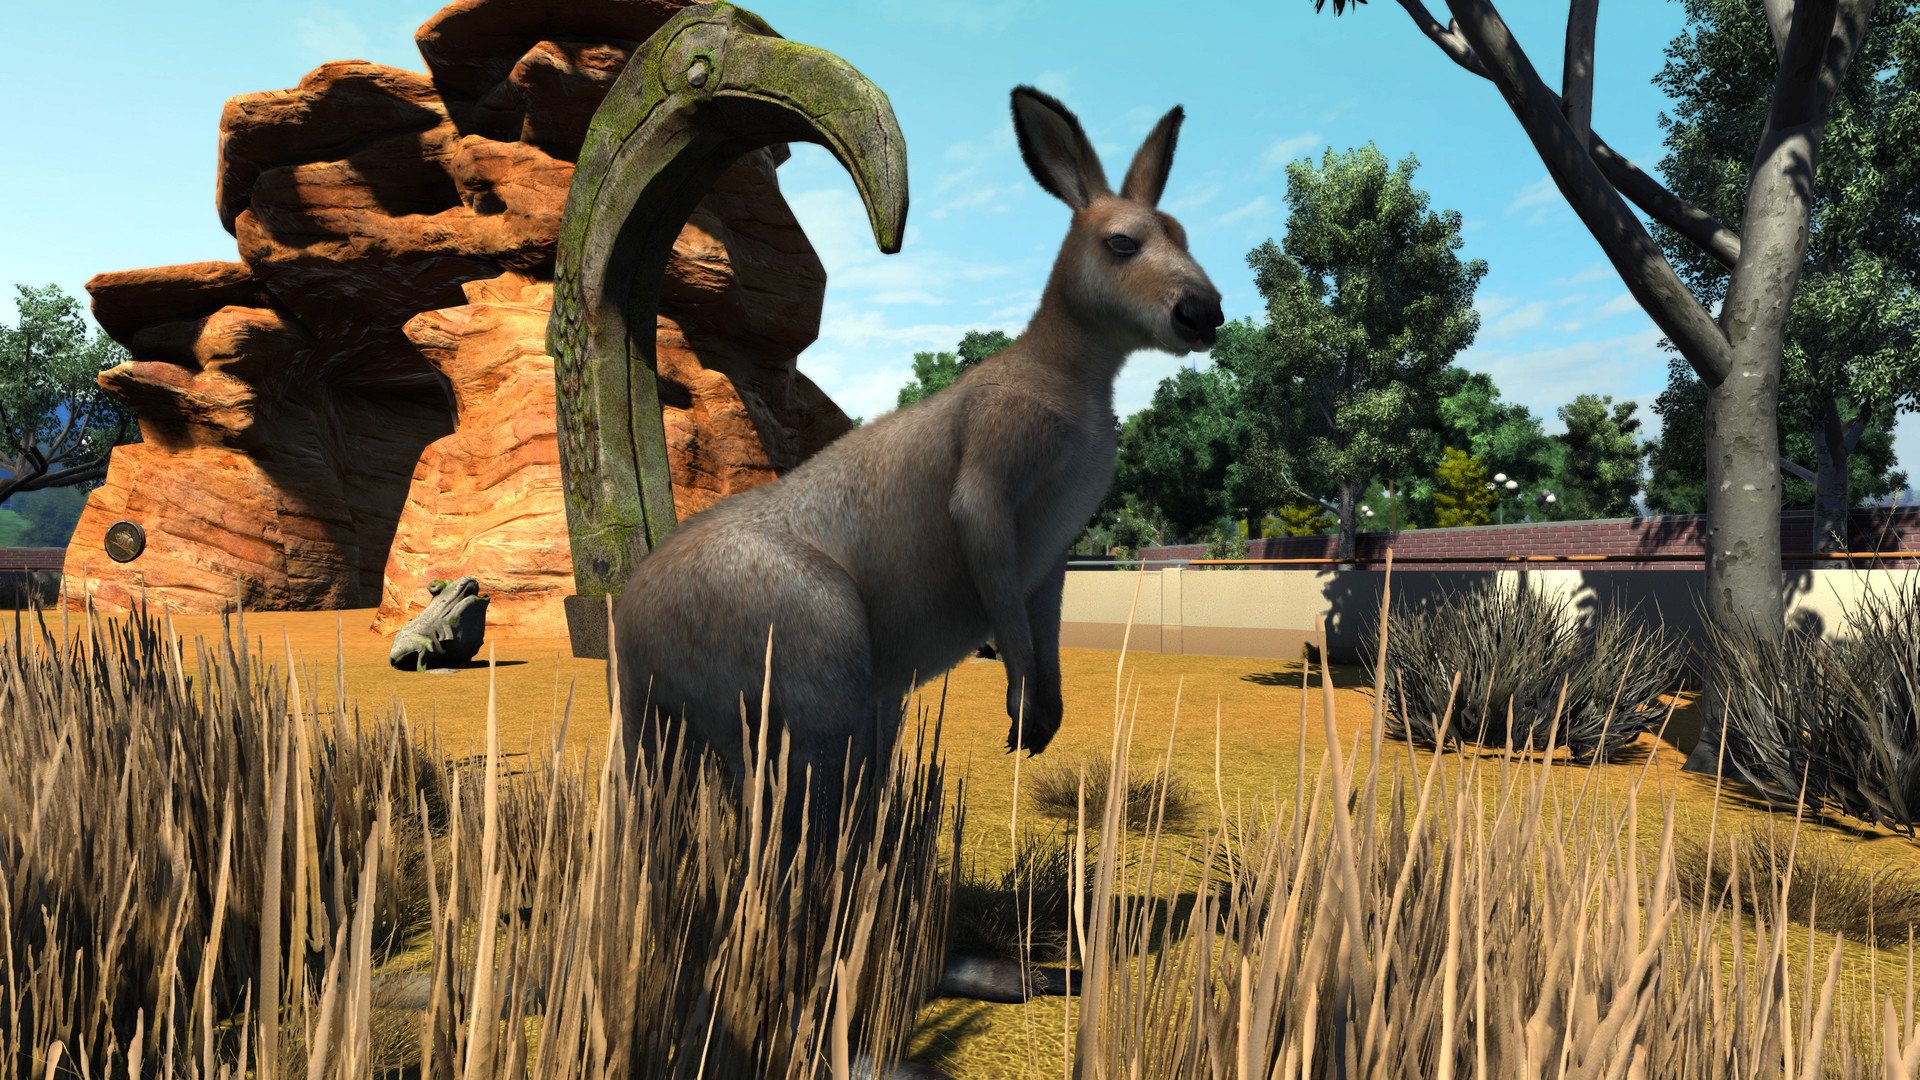 zoo tycoon complete collection download for mac